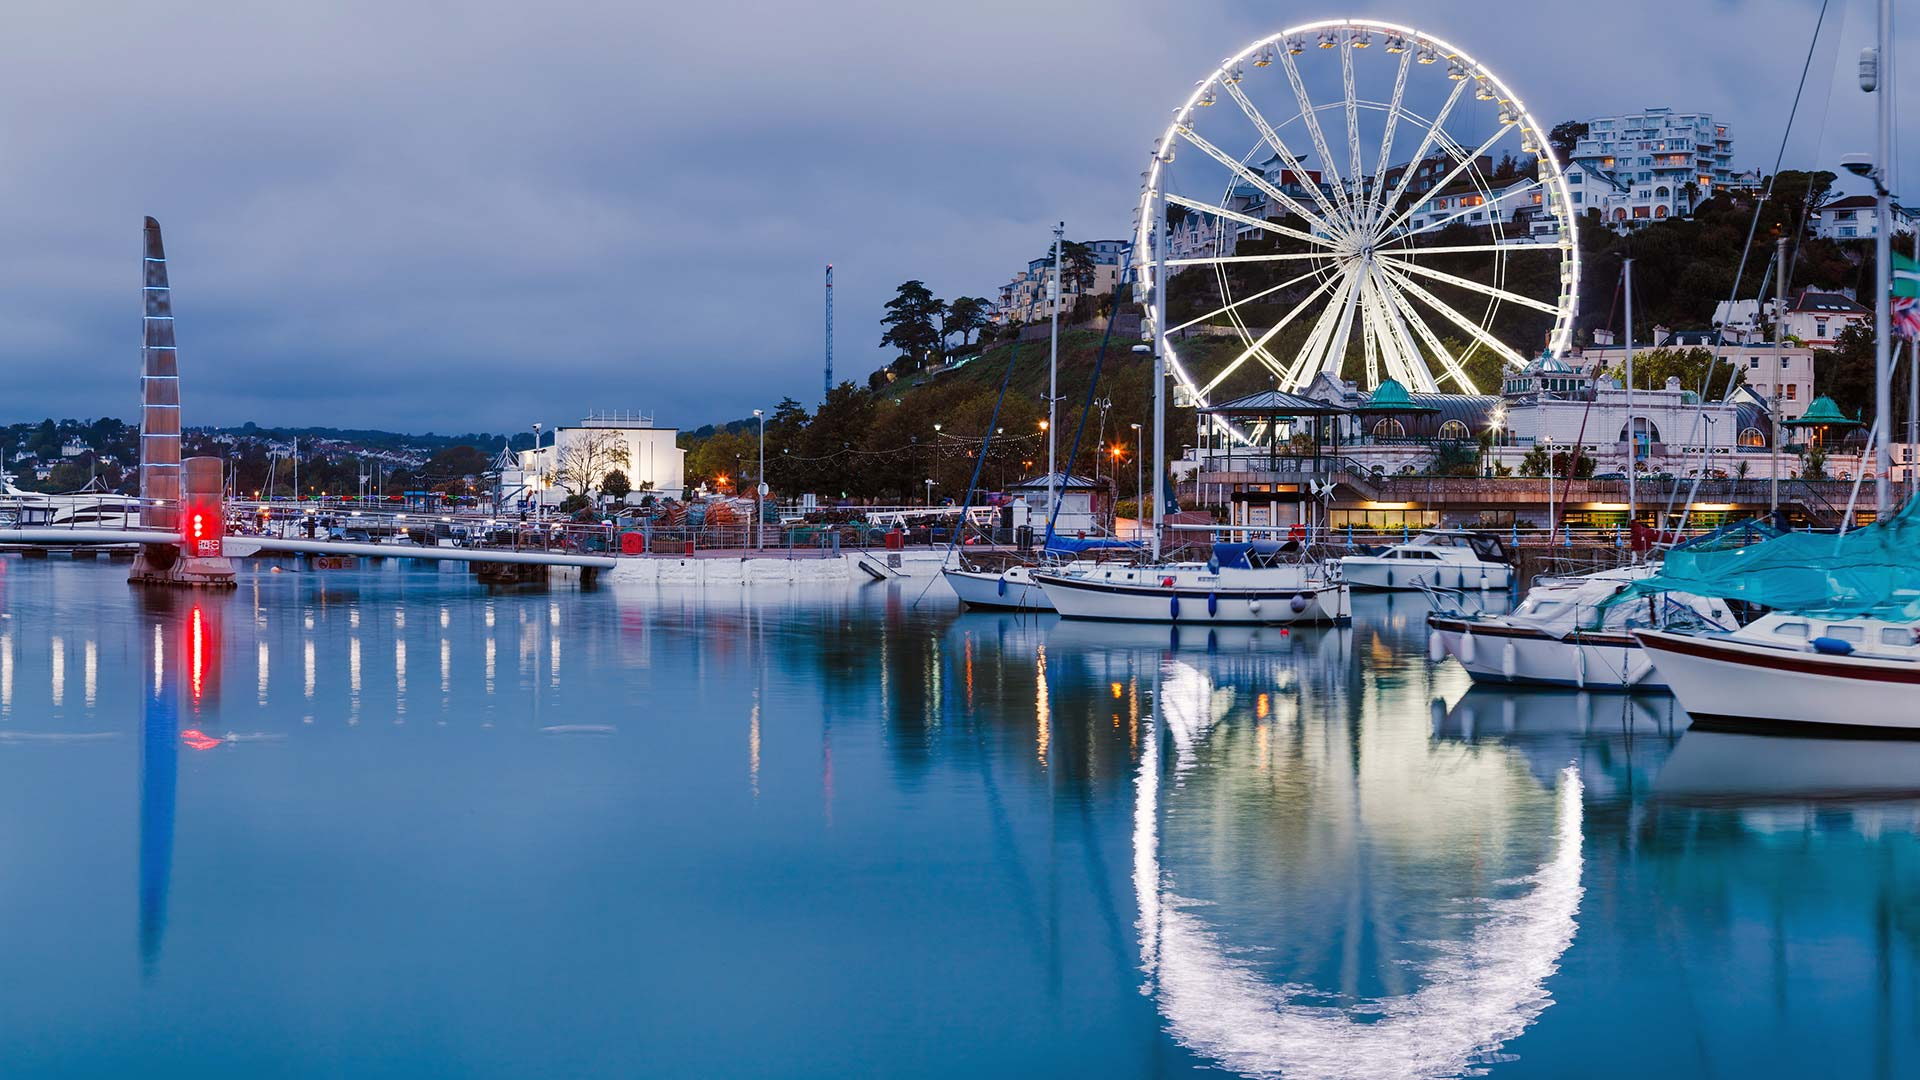 Panorama to illustrate dating in torquay